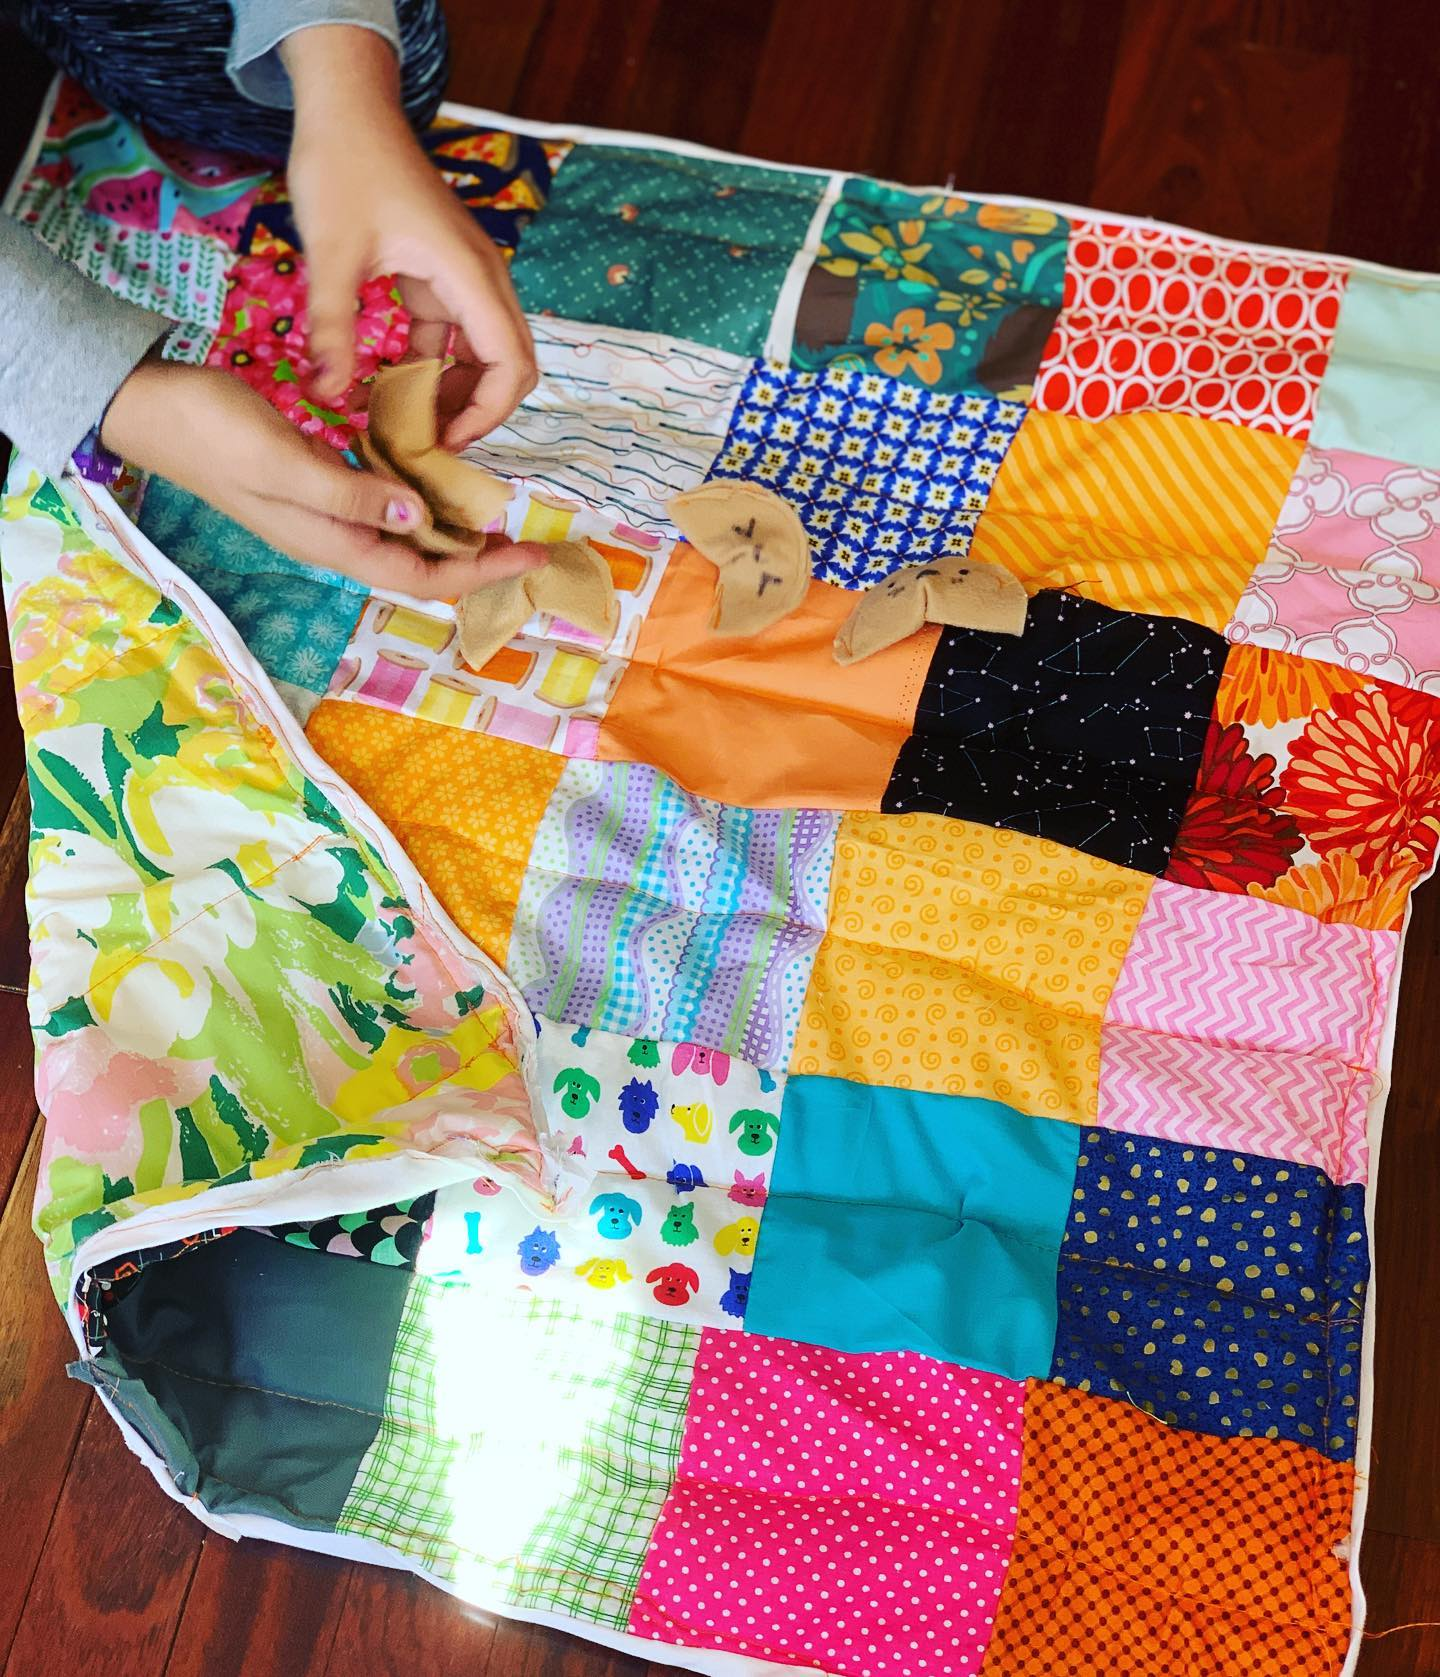 After school Classes - After school sewing and fiber classes for ages 5 and up.